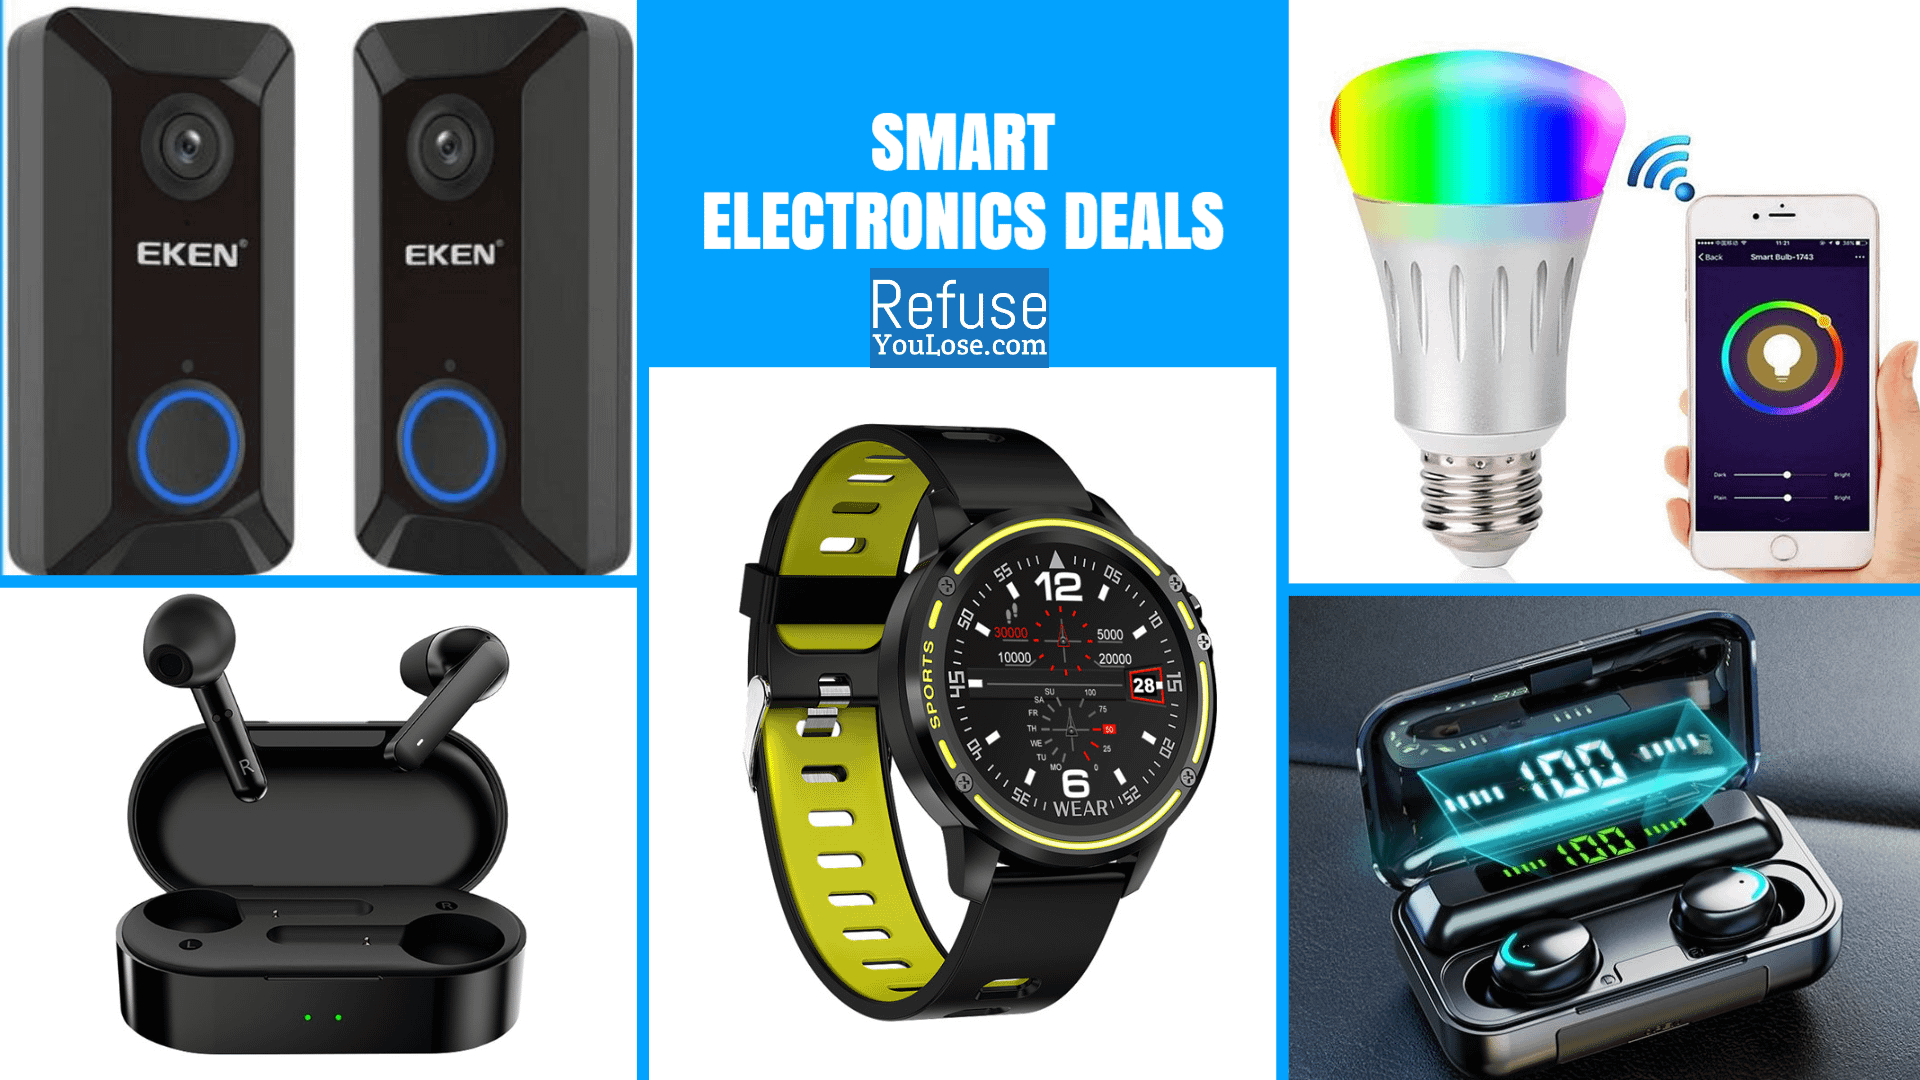 Smart Electronics Deals at RefuseYouLose.com